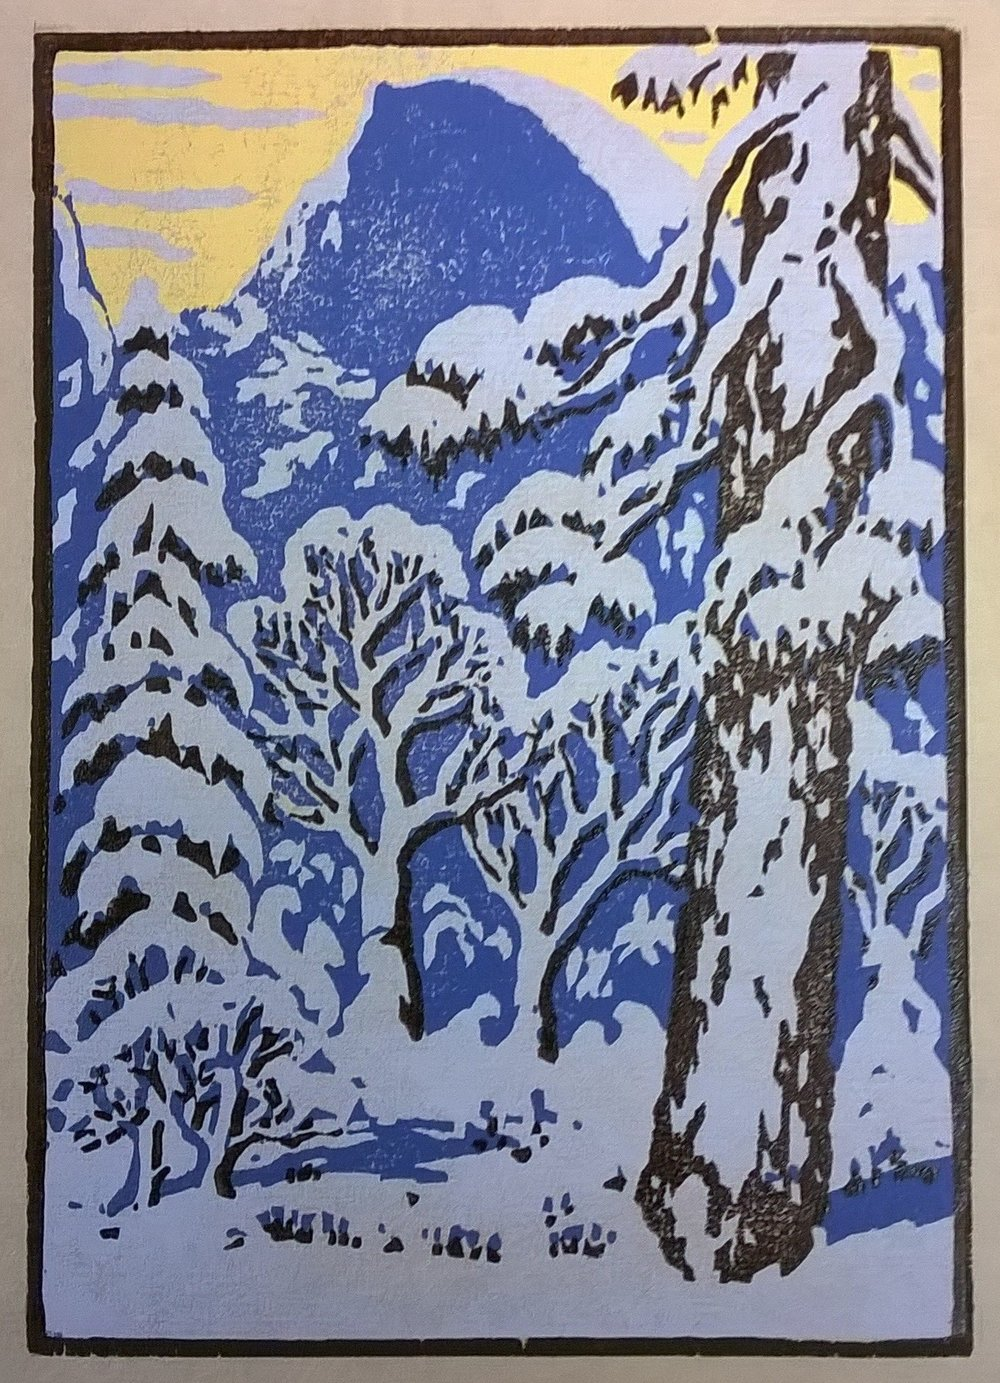 Half Dome Winter, Yosemite | Della Taylor Hoss Woodcut | Printed by Martino Hoss | 5.25 x 7.5 in | $250